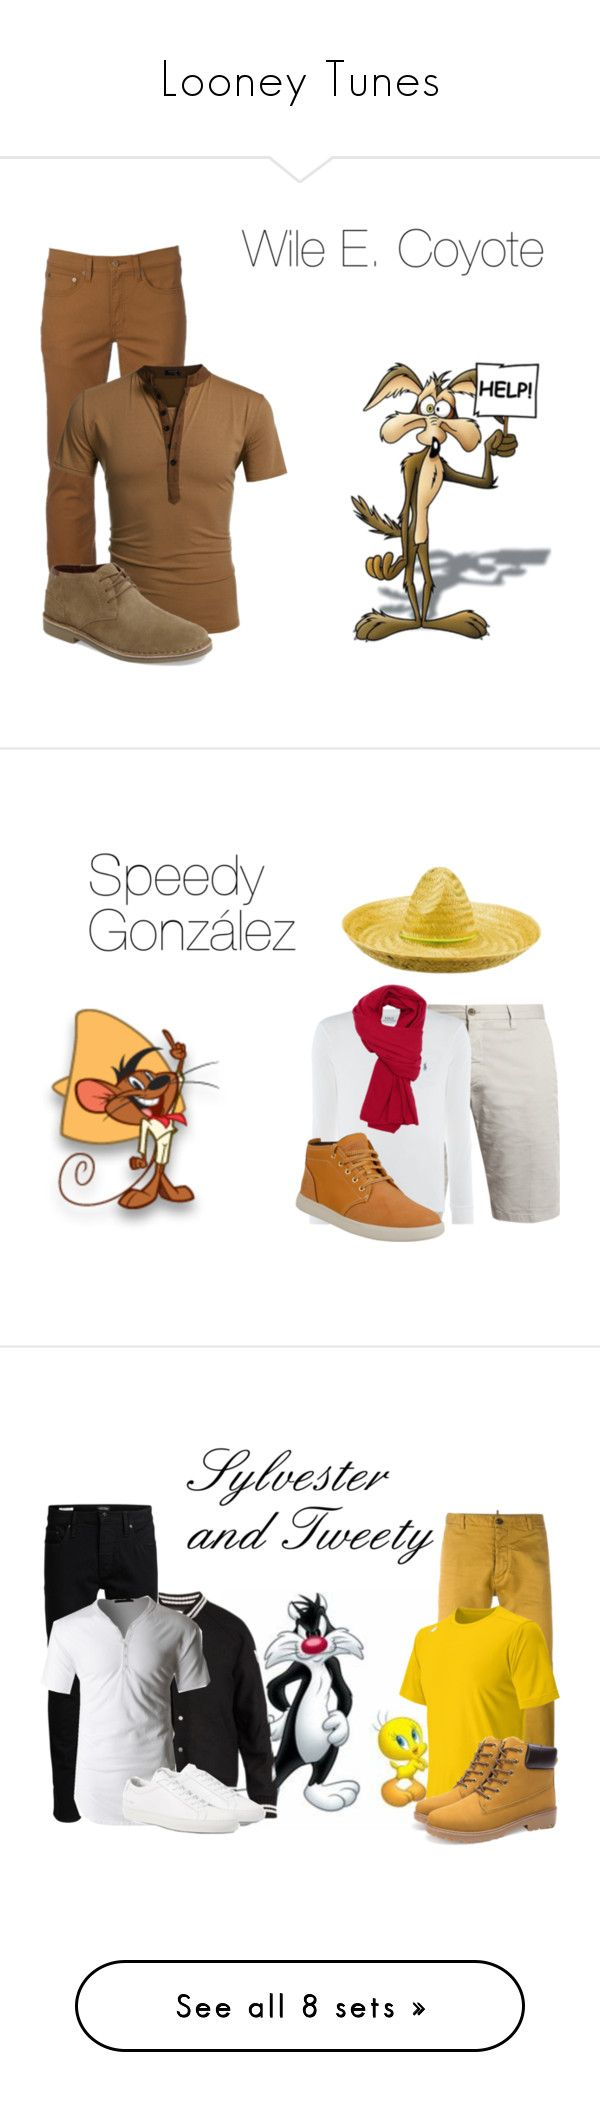 """Looney Tunes"" by hestiarocks ❤ liked on Polyvore featuring LOONEY TUNES, Urban Pipeline, Kenneth Cole Reaction, men's fashion, menswear, J.W. Brine, Polo Ralph Lauren, Timberland, Emporio Armani and Off-White"